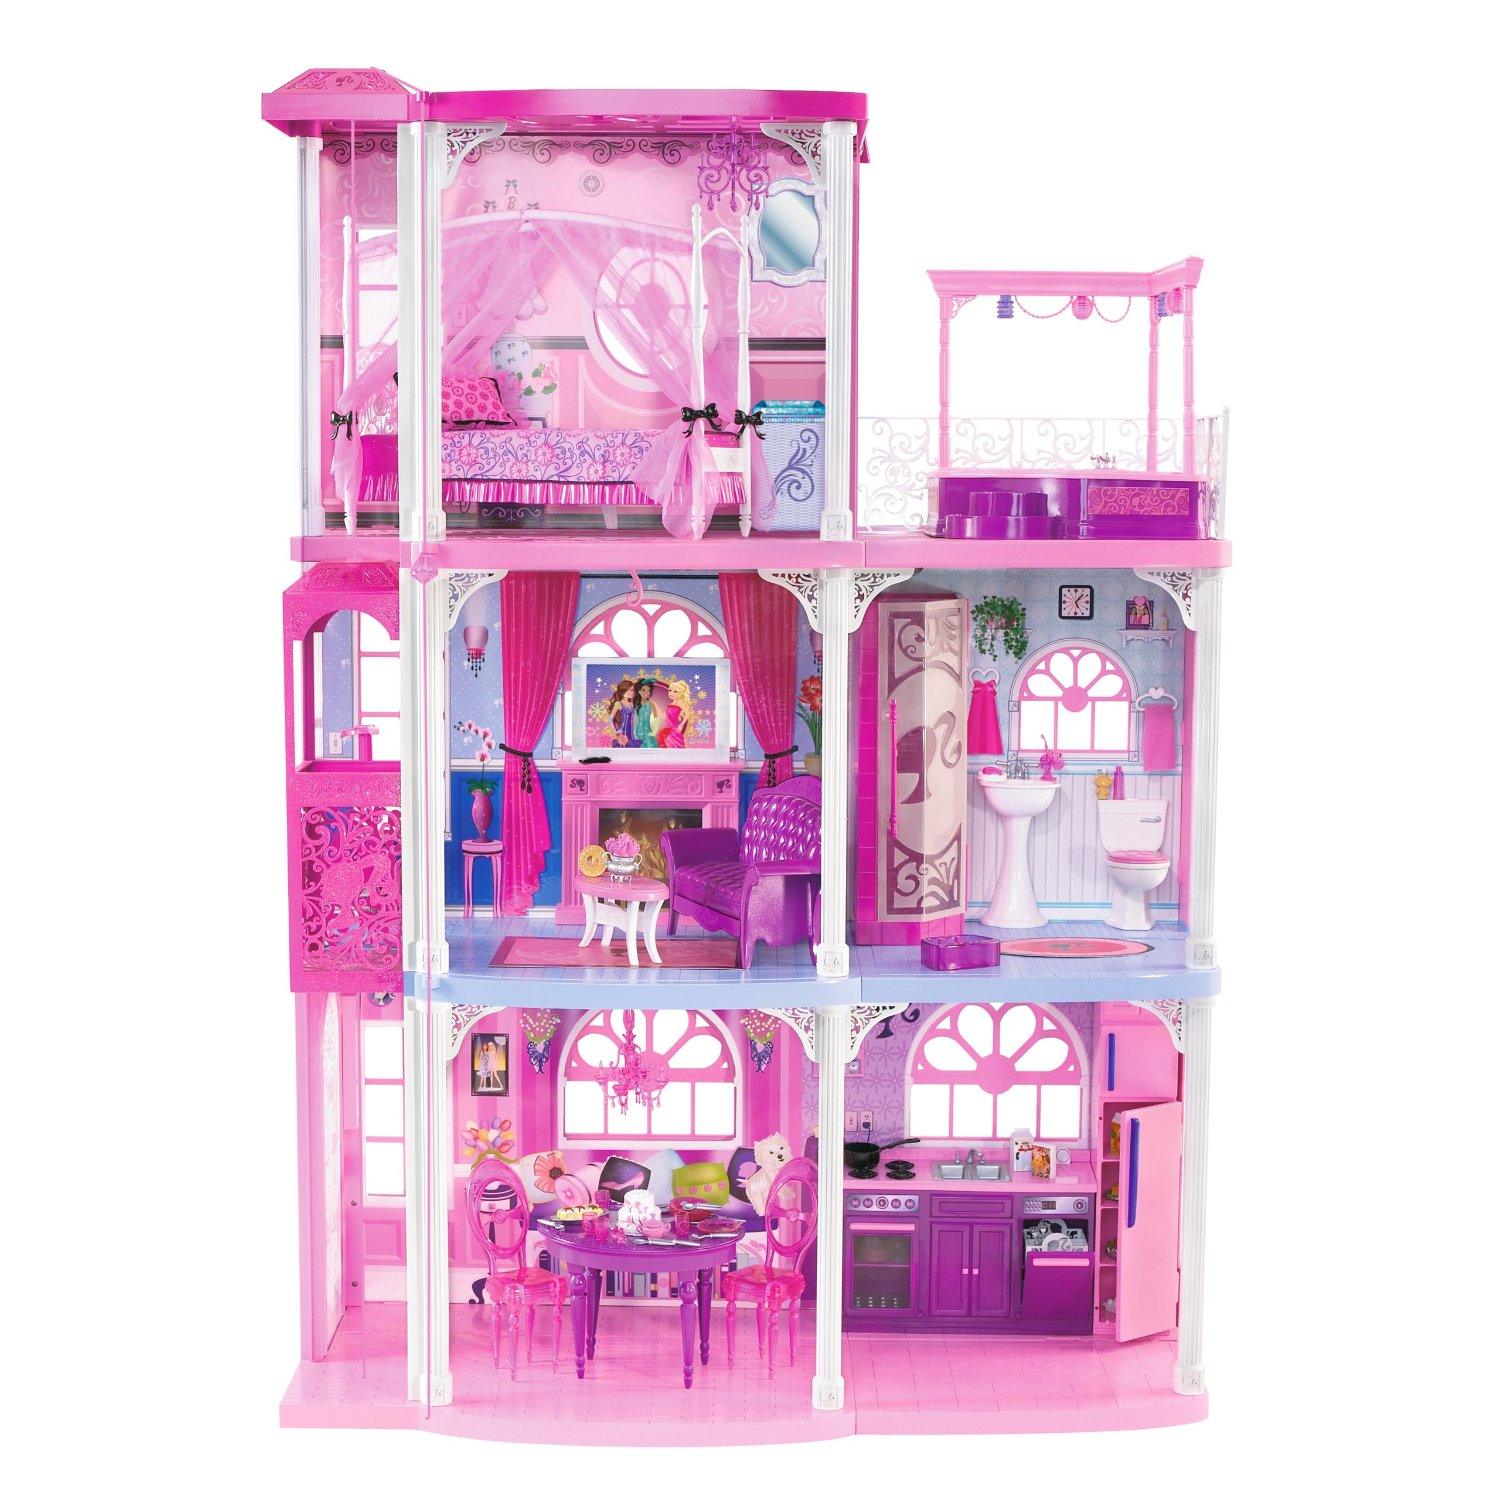 Barbie pink 3 story dream townhouse toys games - Maison de reve barbie ...